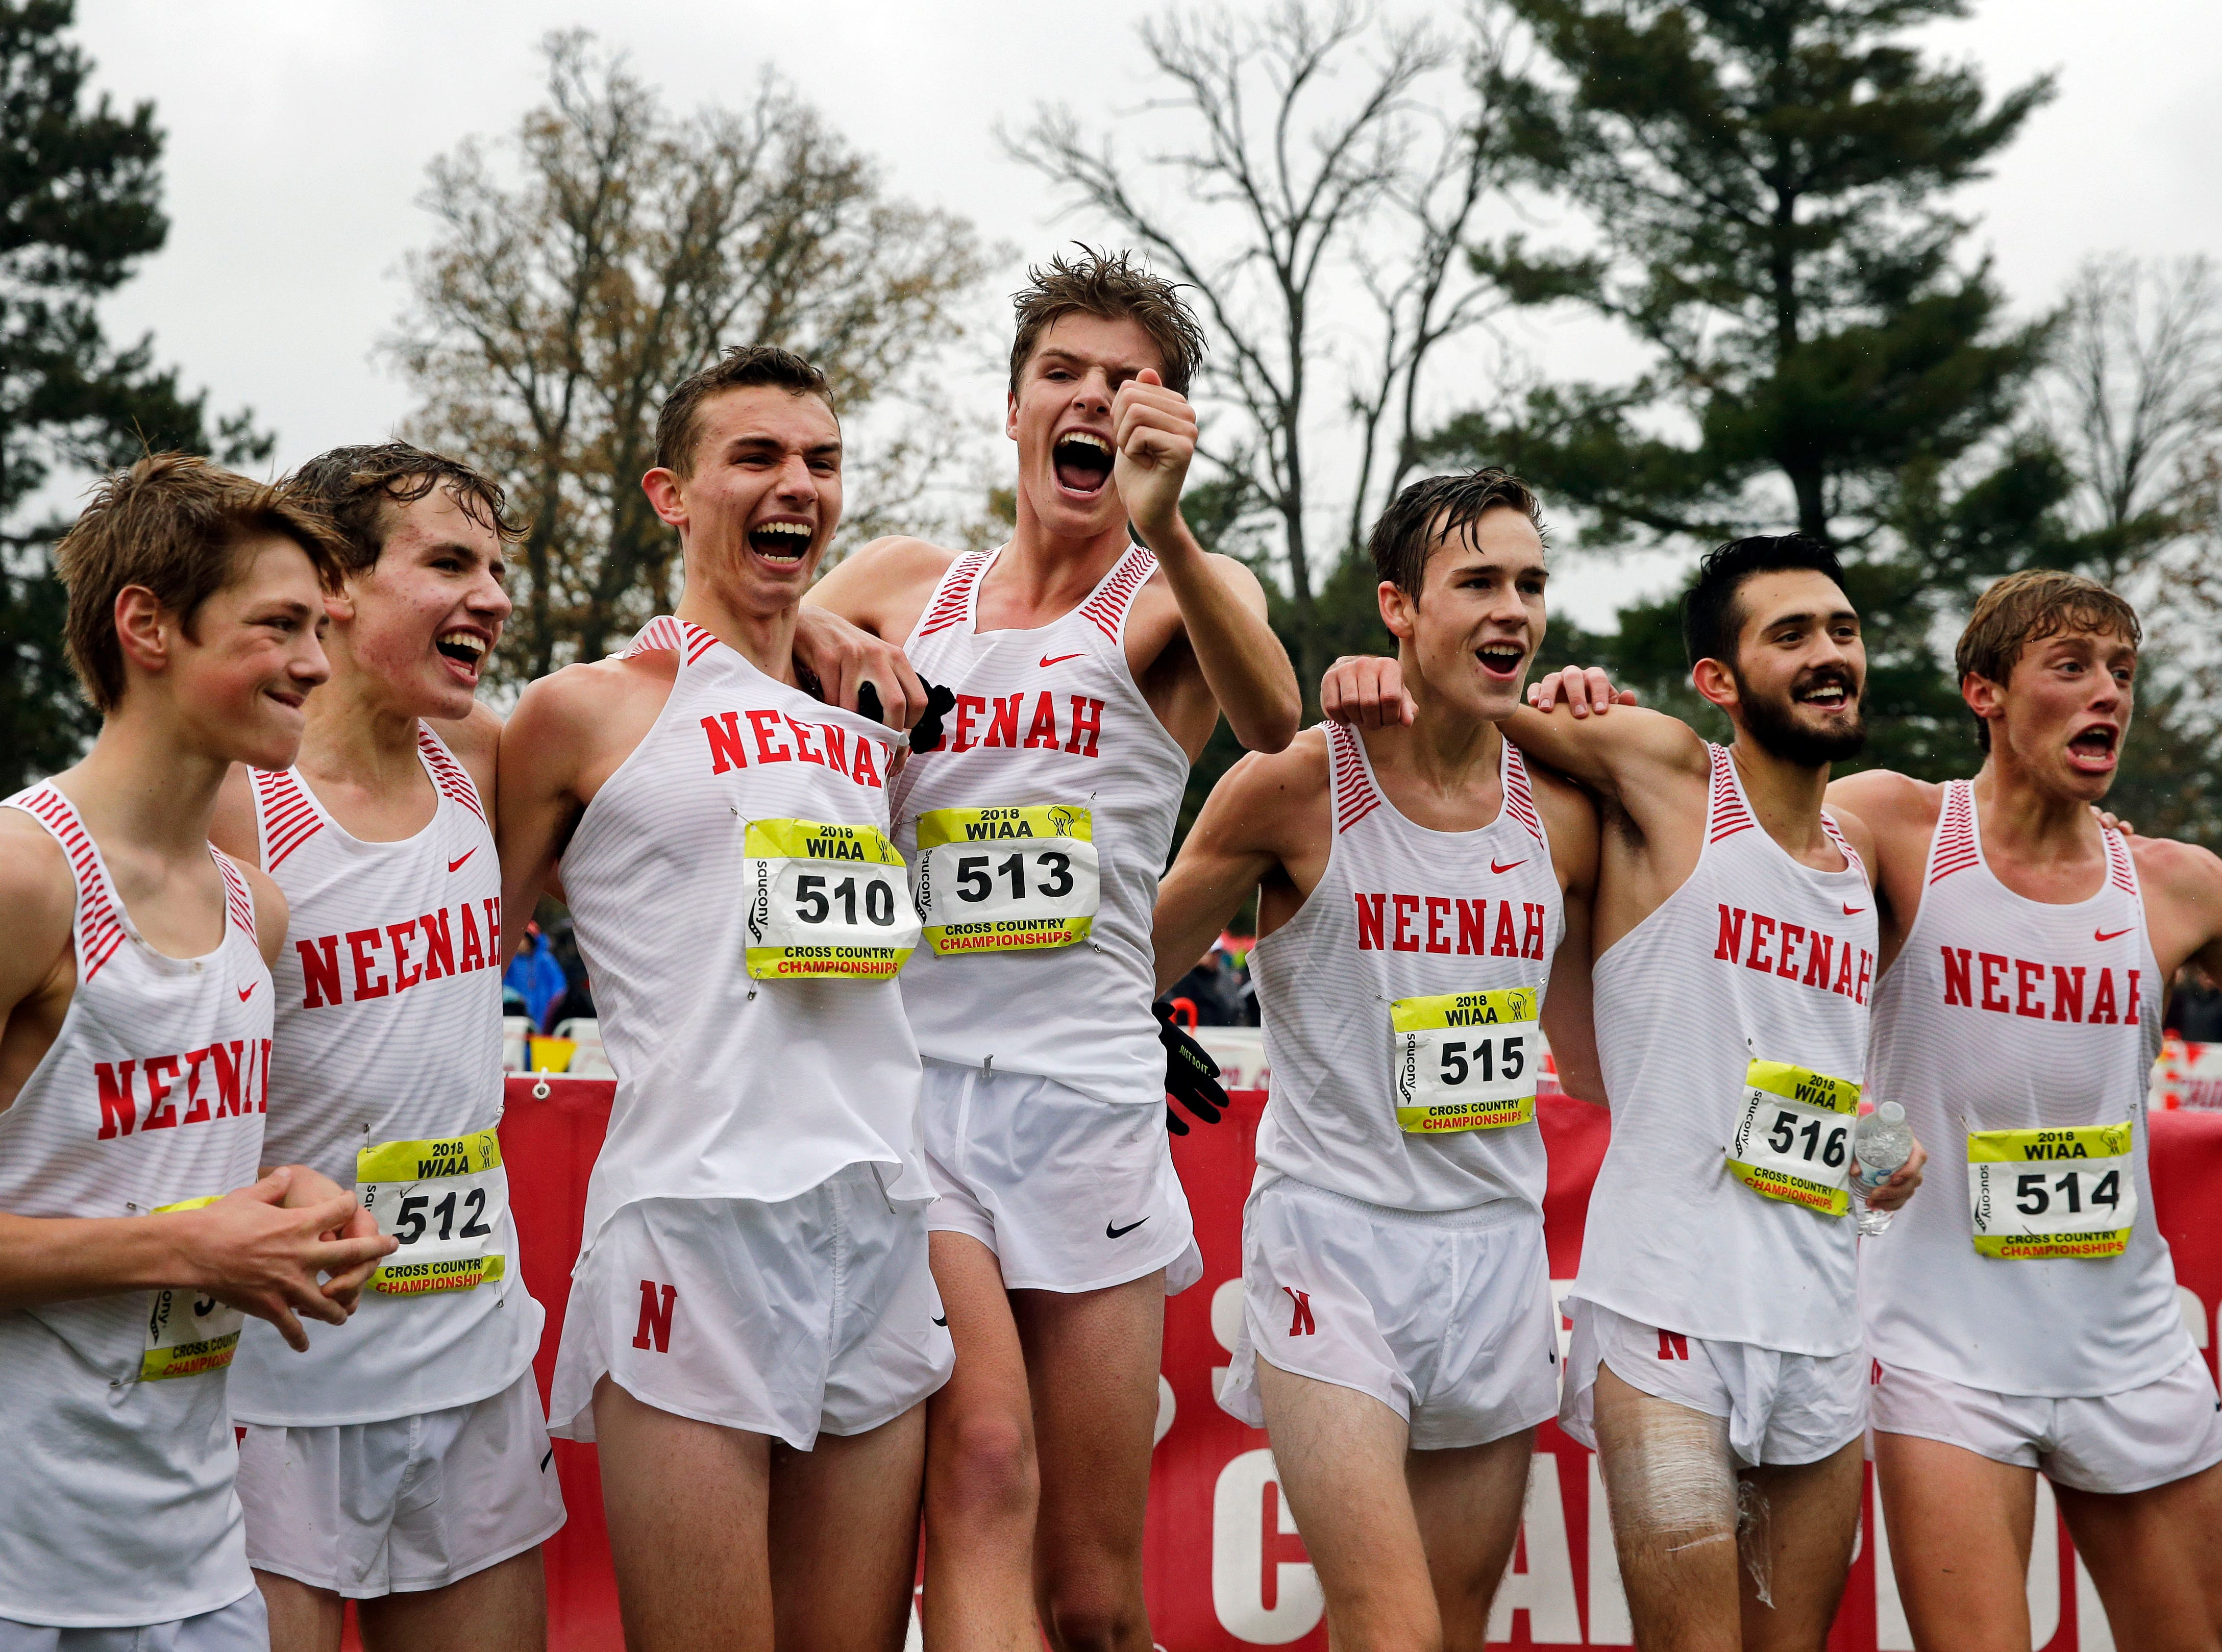 The Neenah team celebrates at the 2018 WIAA Cross Country State Meet Saturday, October 27, 2018, at the Ridges Golf Course in Wisconsin Rapids, Wis.Ron Page/USA TODAY NETWORK-Wisconsin